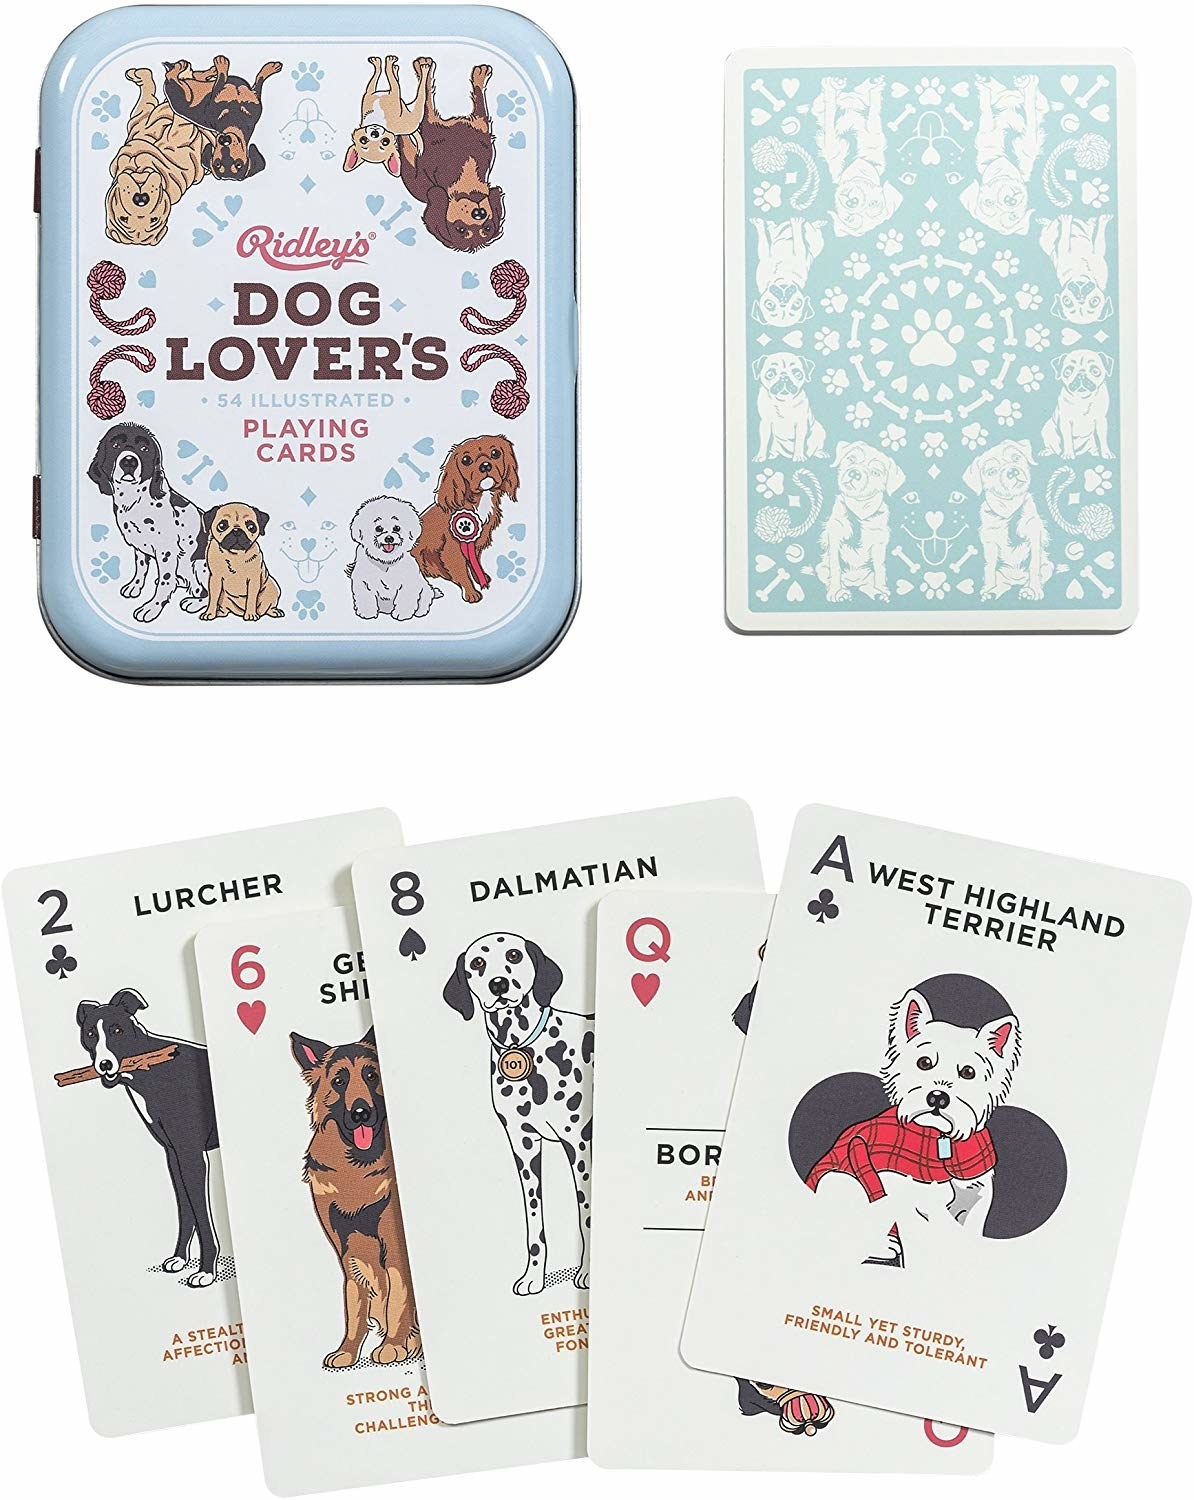 Metal case and five cards from the set; Ace of clubs is a West Highland Terrier